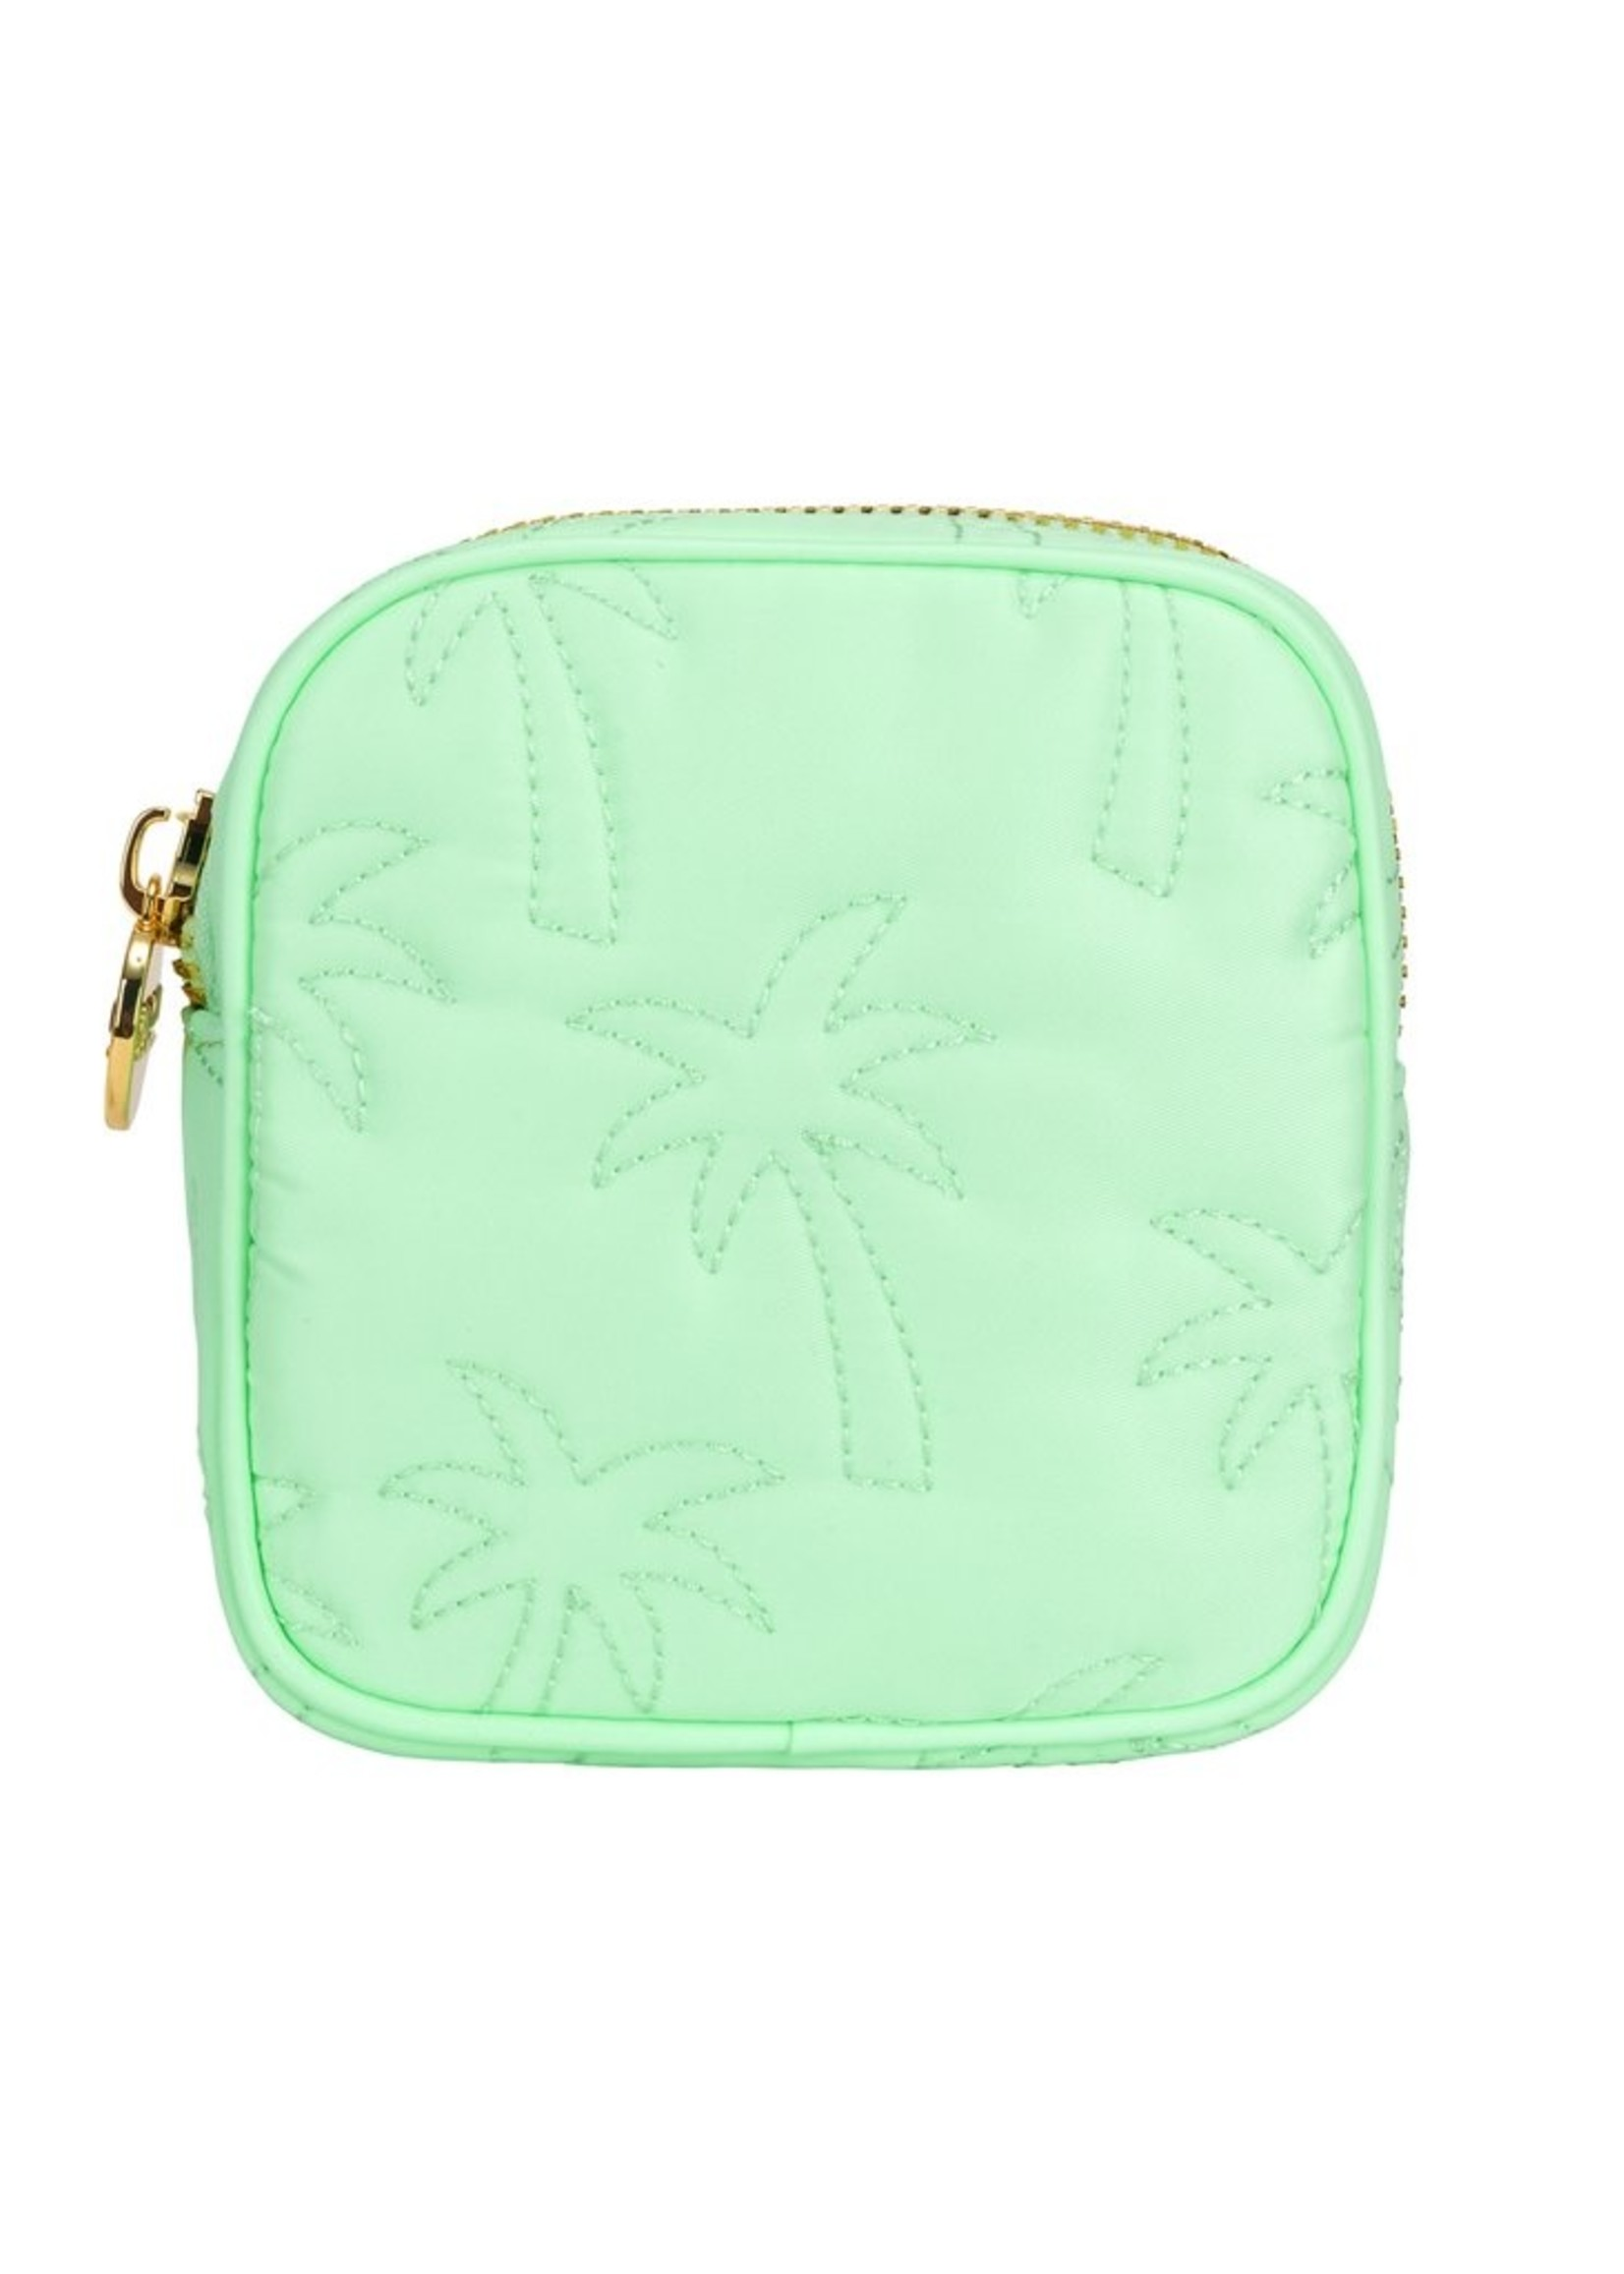 Stoney clover Puffy Mini Pouch